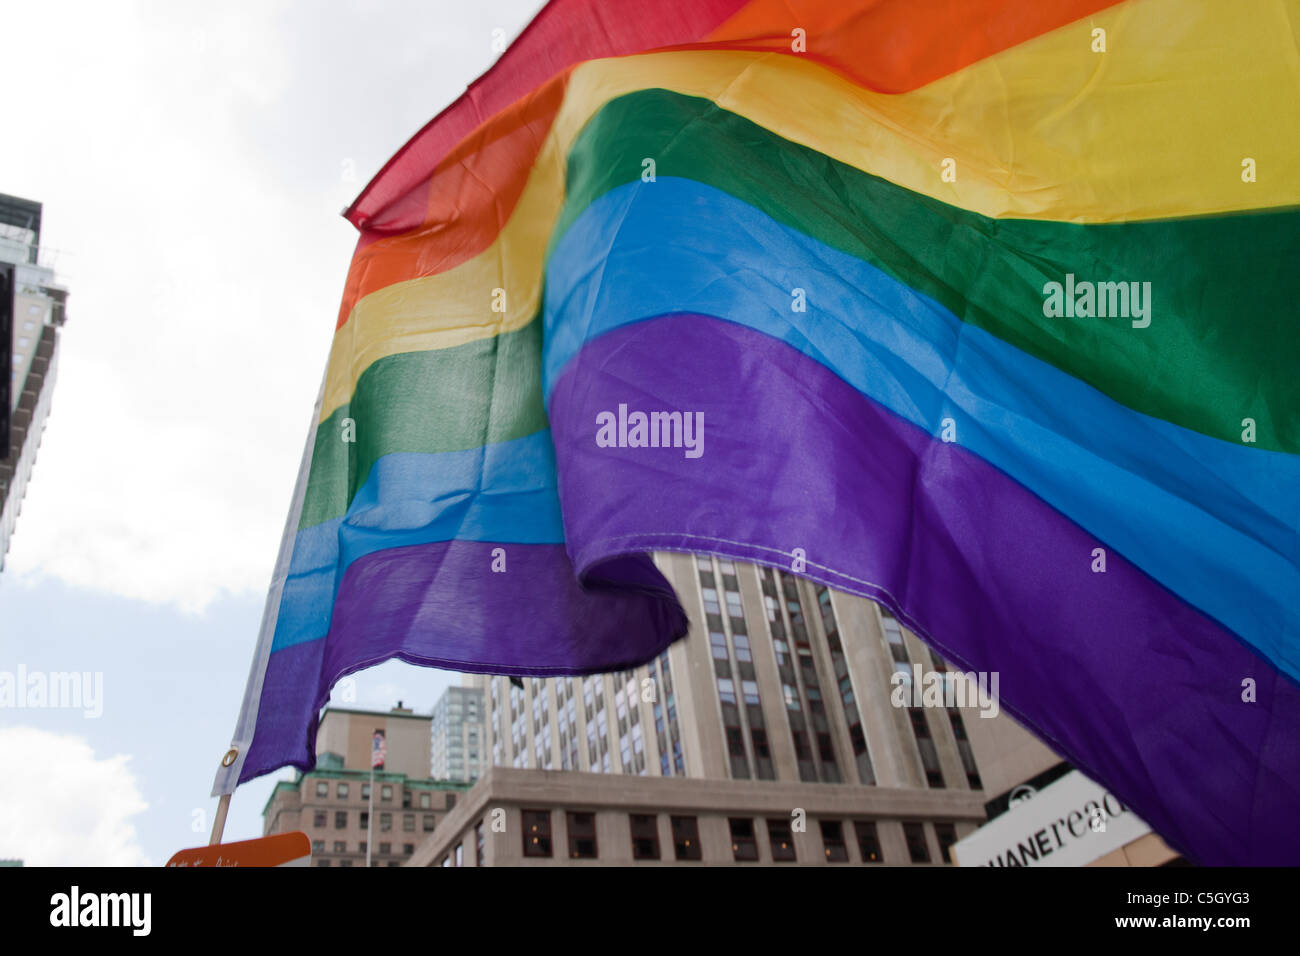 The gay pride rainbow flag flies under the Empire State building during the Gay Pride Parade in New York City. Stock Photo